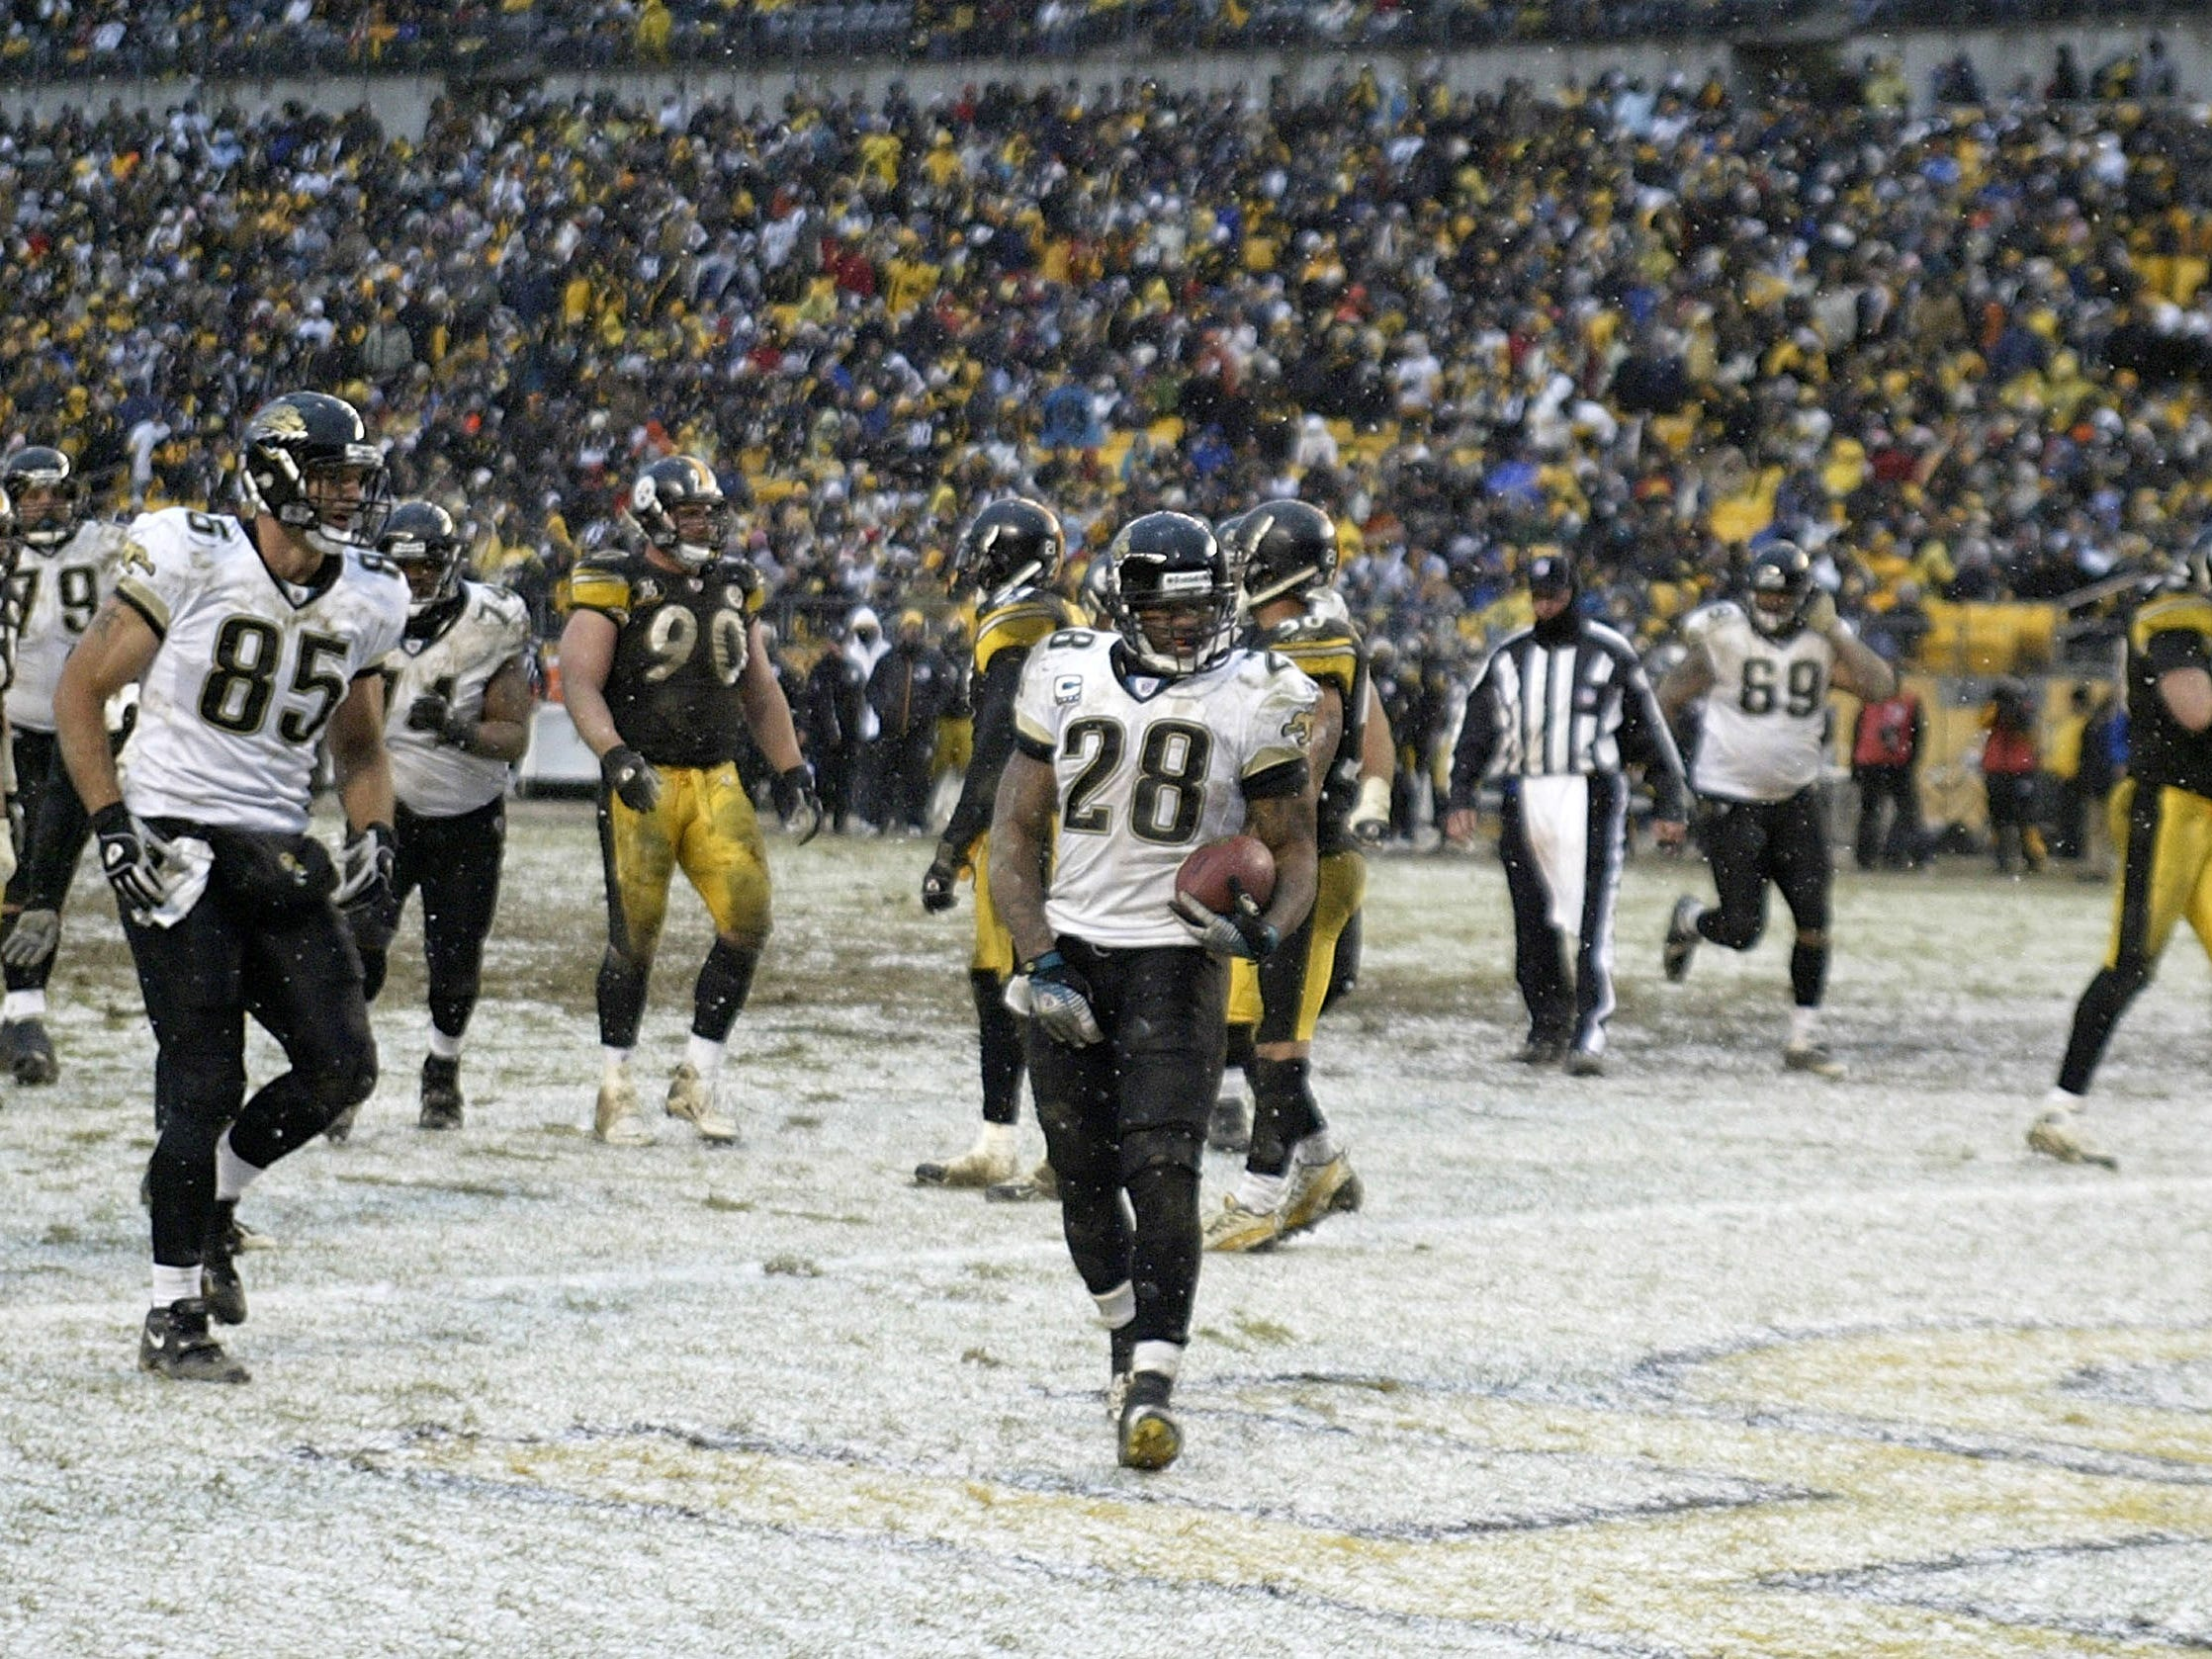 Dec. 16, 2007: Jacksonville Jaguars running back Fred Taylor walks into the end zone after scoring the winning touchdown against the Pittsburgh Steelers at Heinz Field. The Jaguars won the game, 29-22.